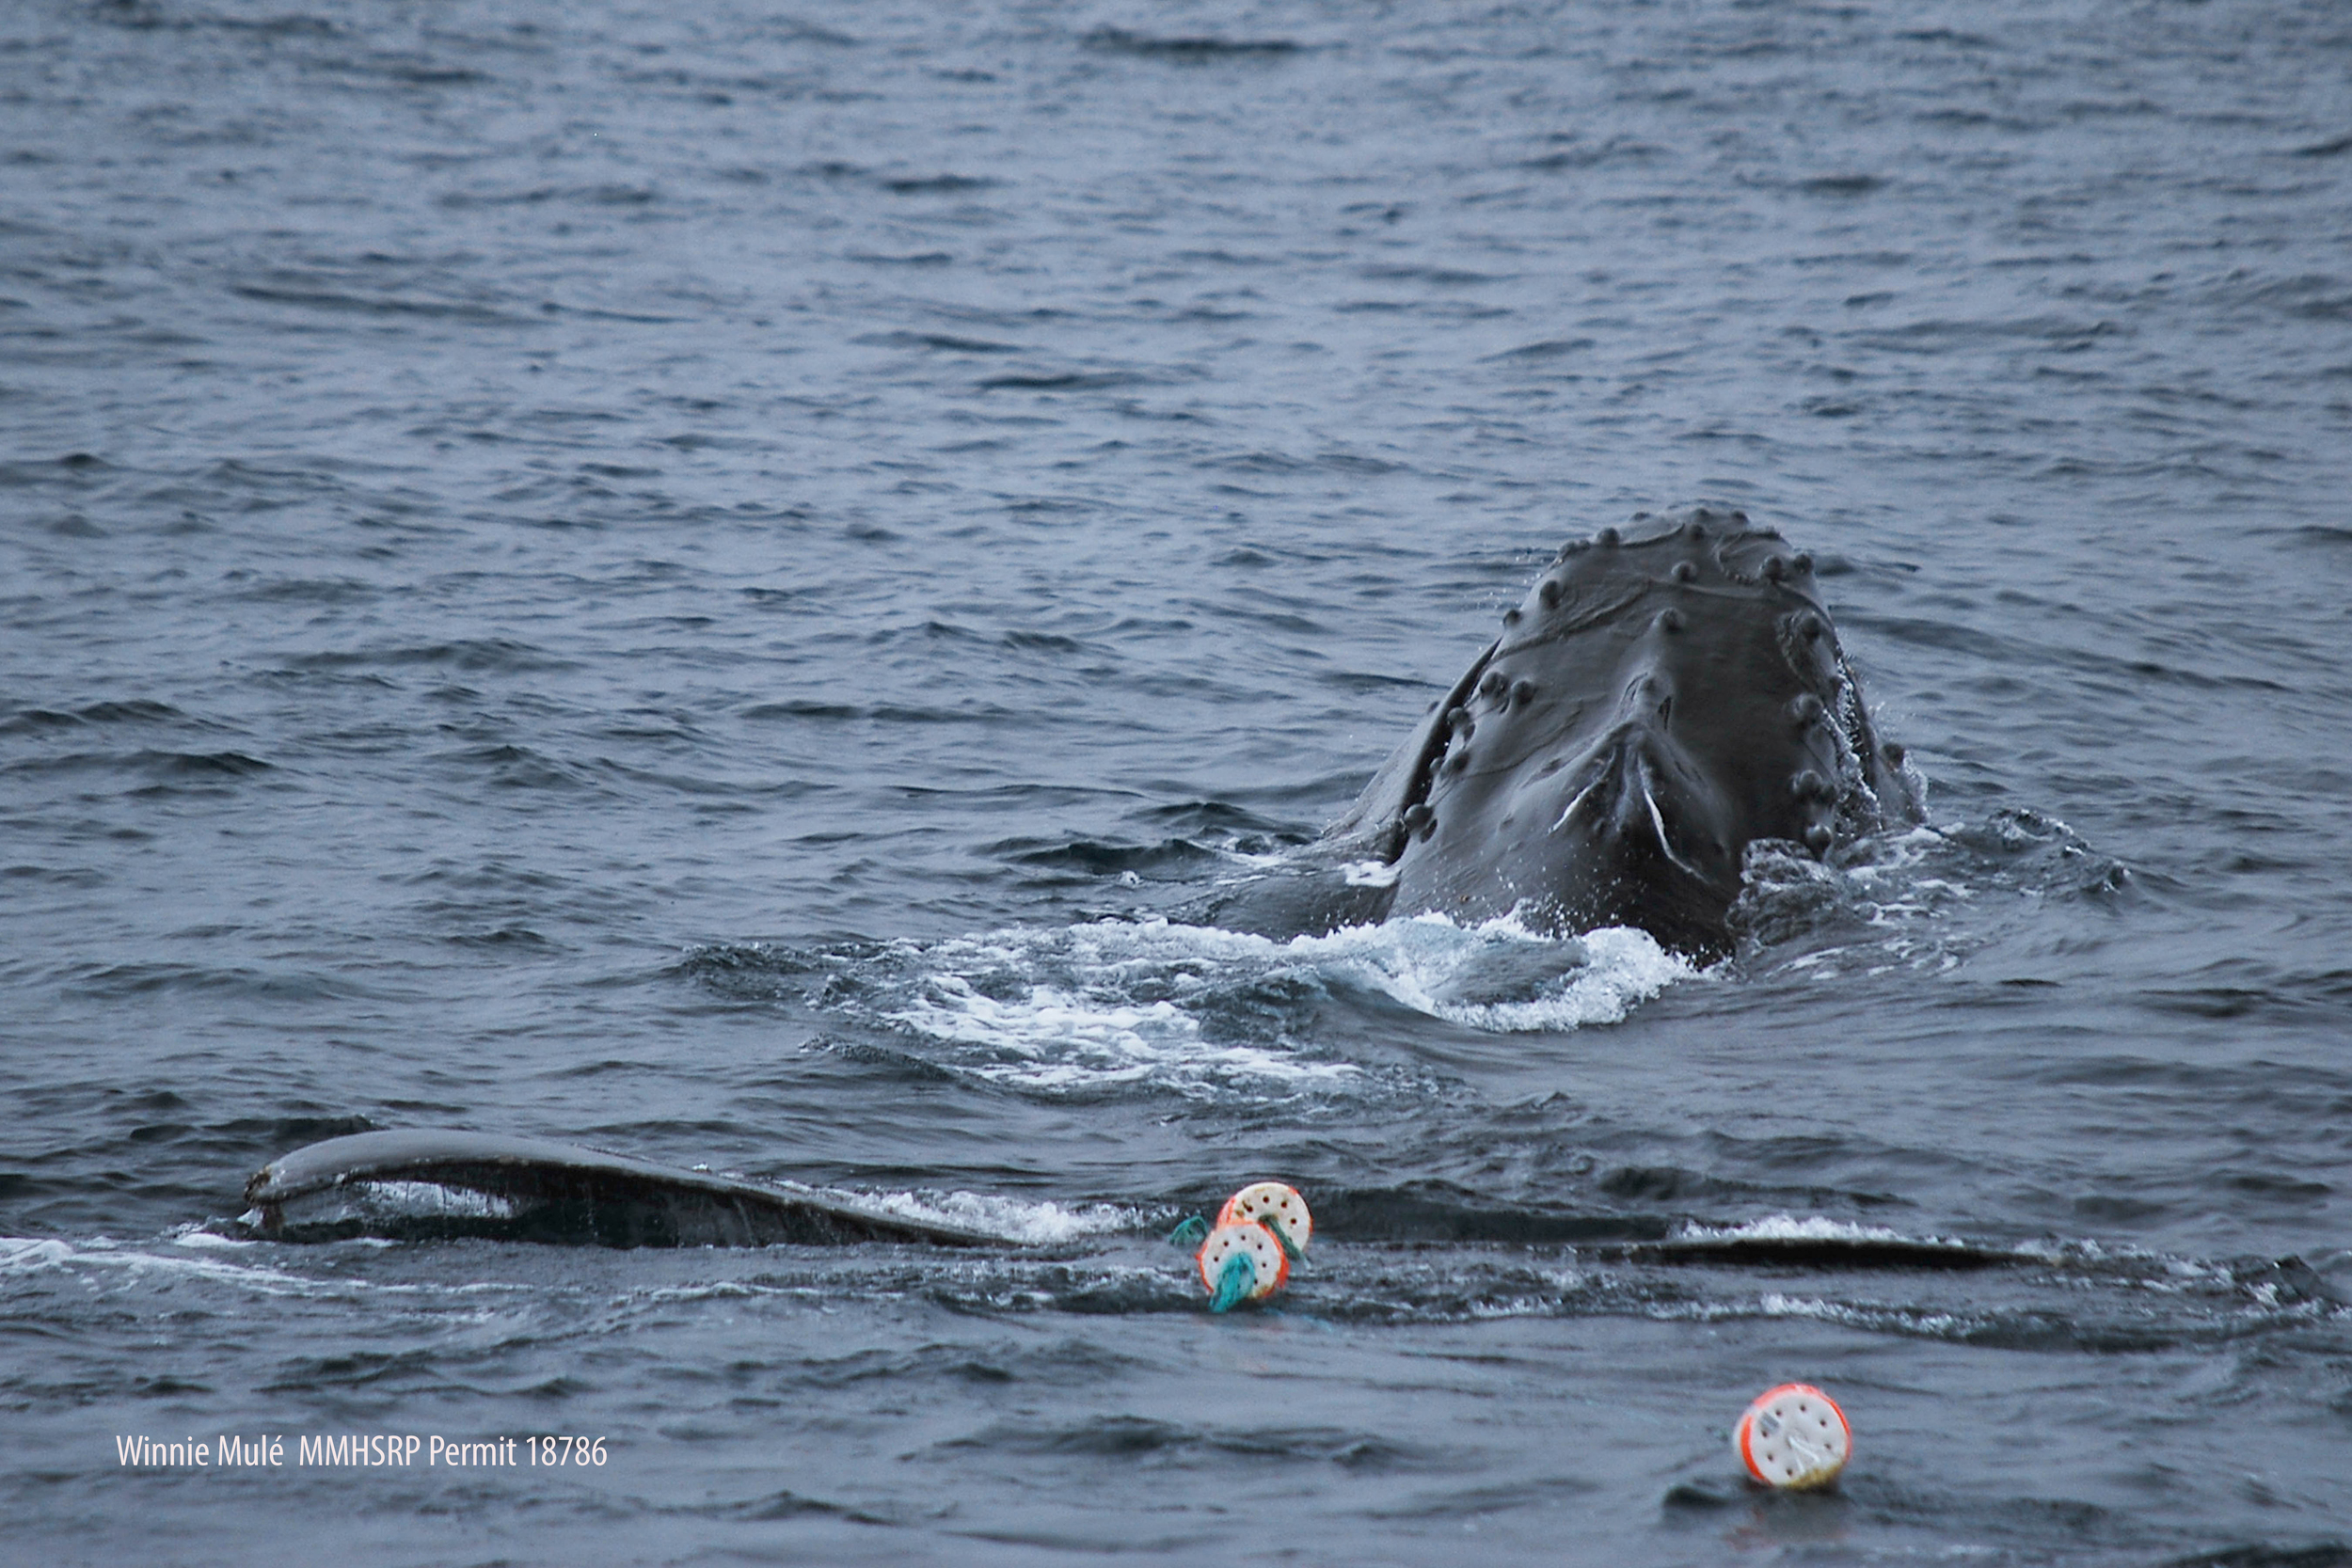 The entangled humpback whale was trailing crab pot line and buoys.